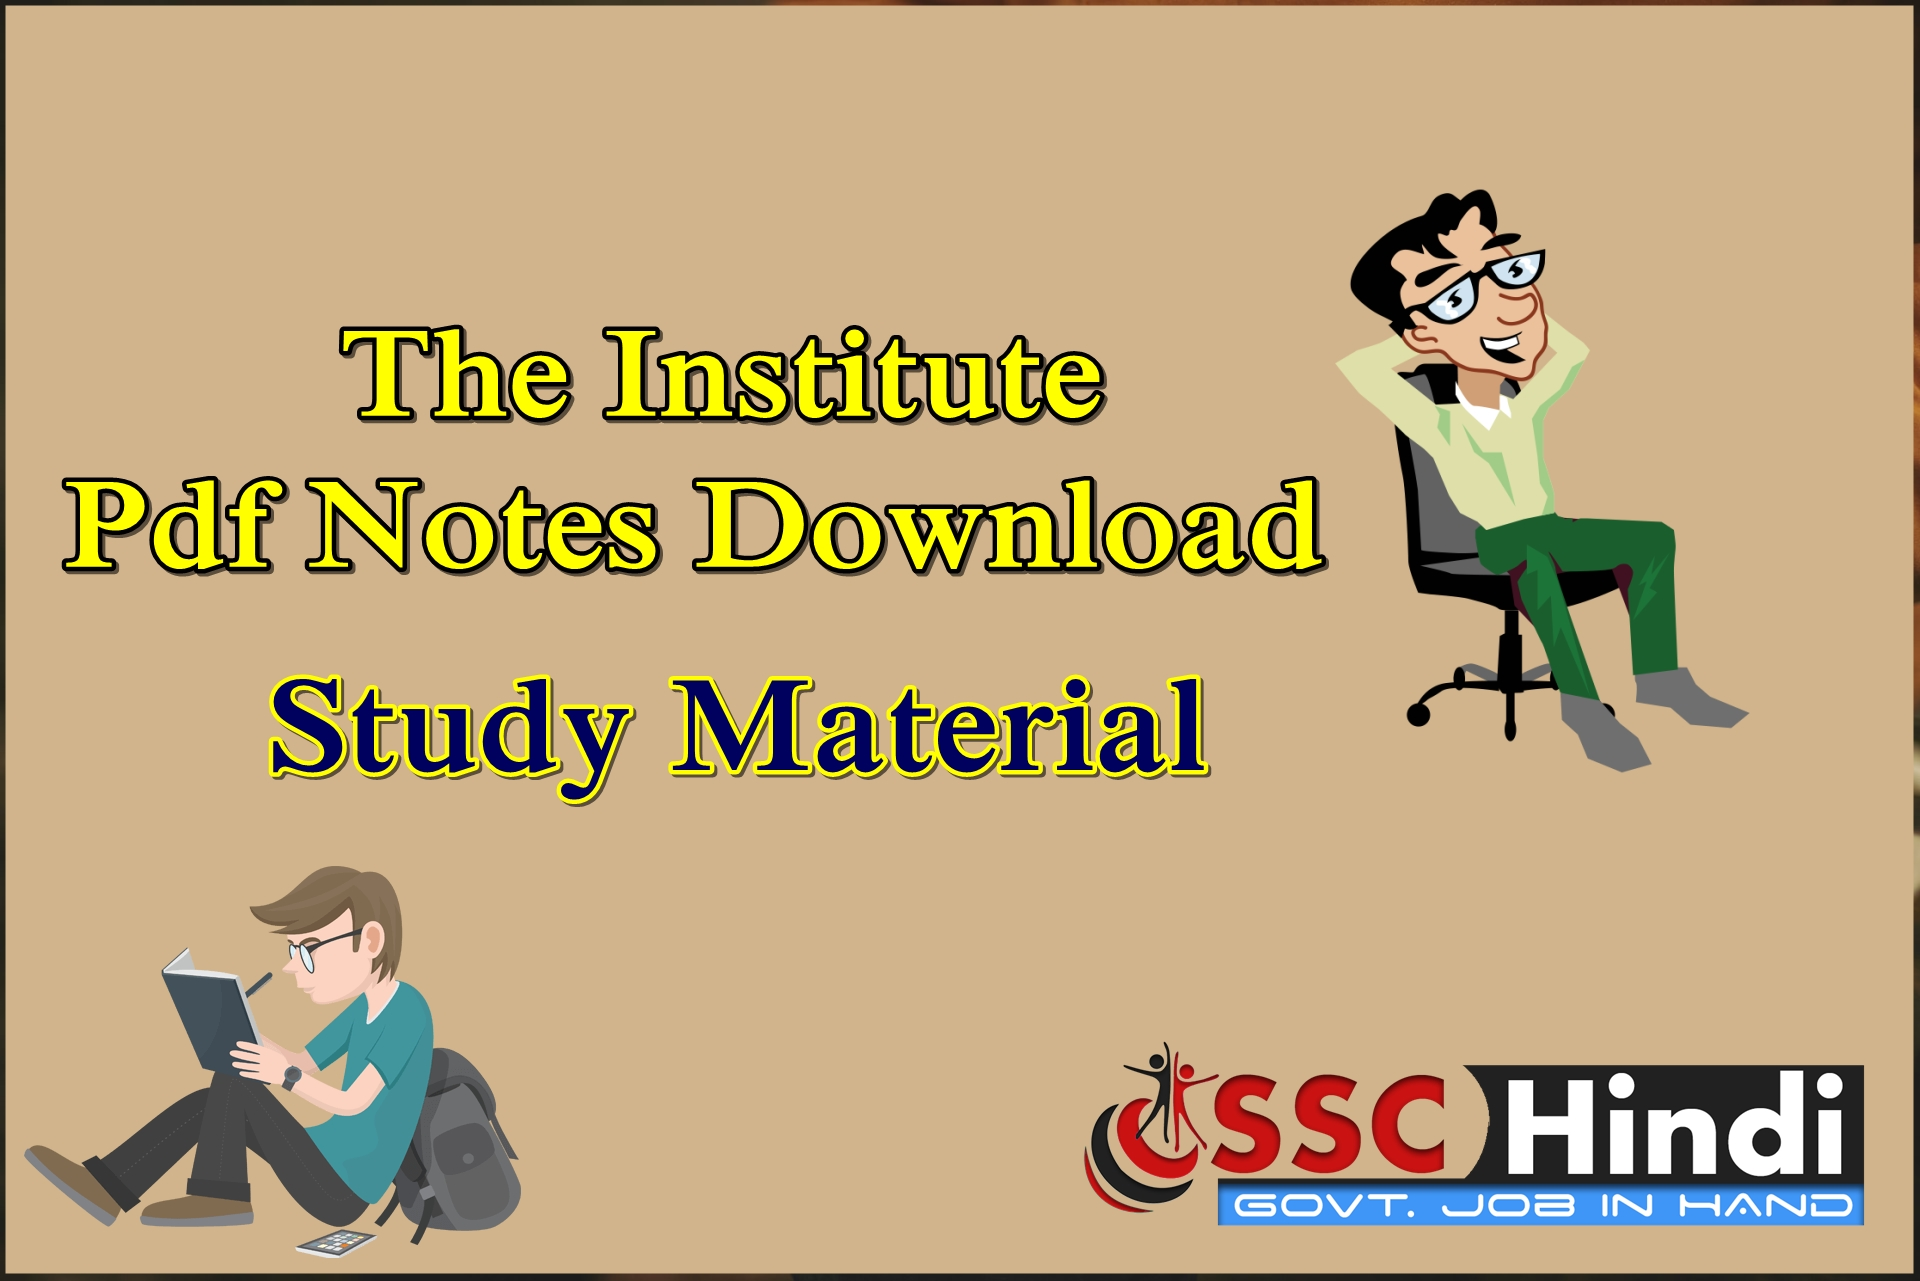 The Institute Pdf Notes Download : SSC Study Material - SSC